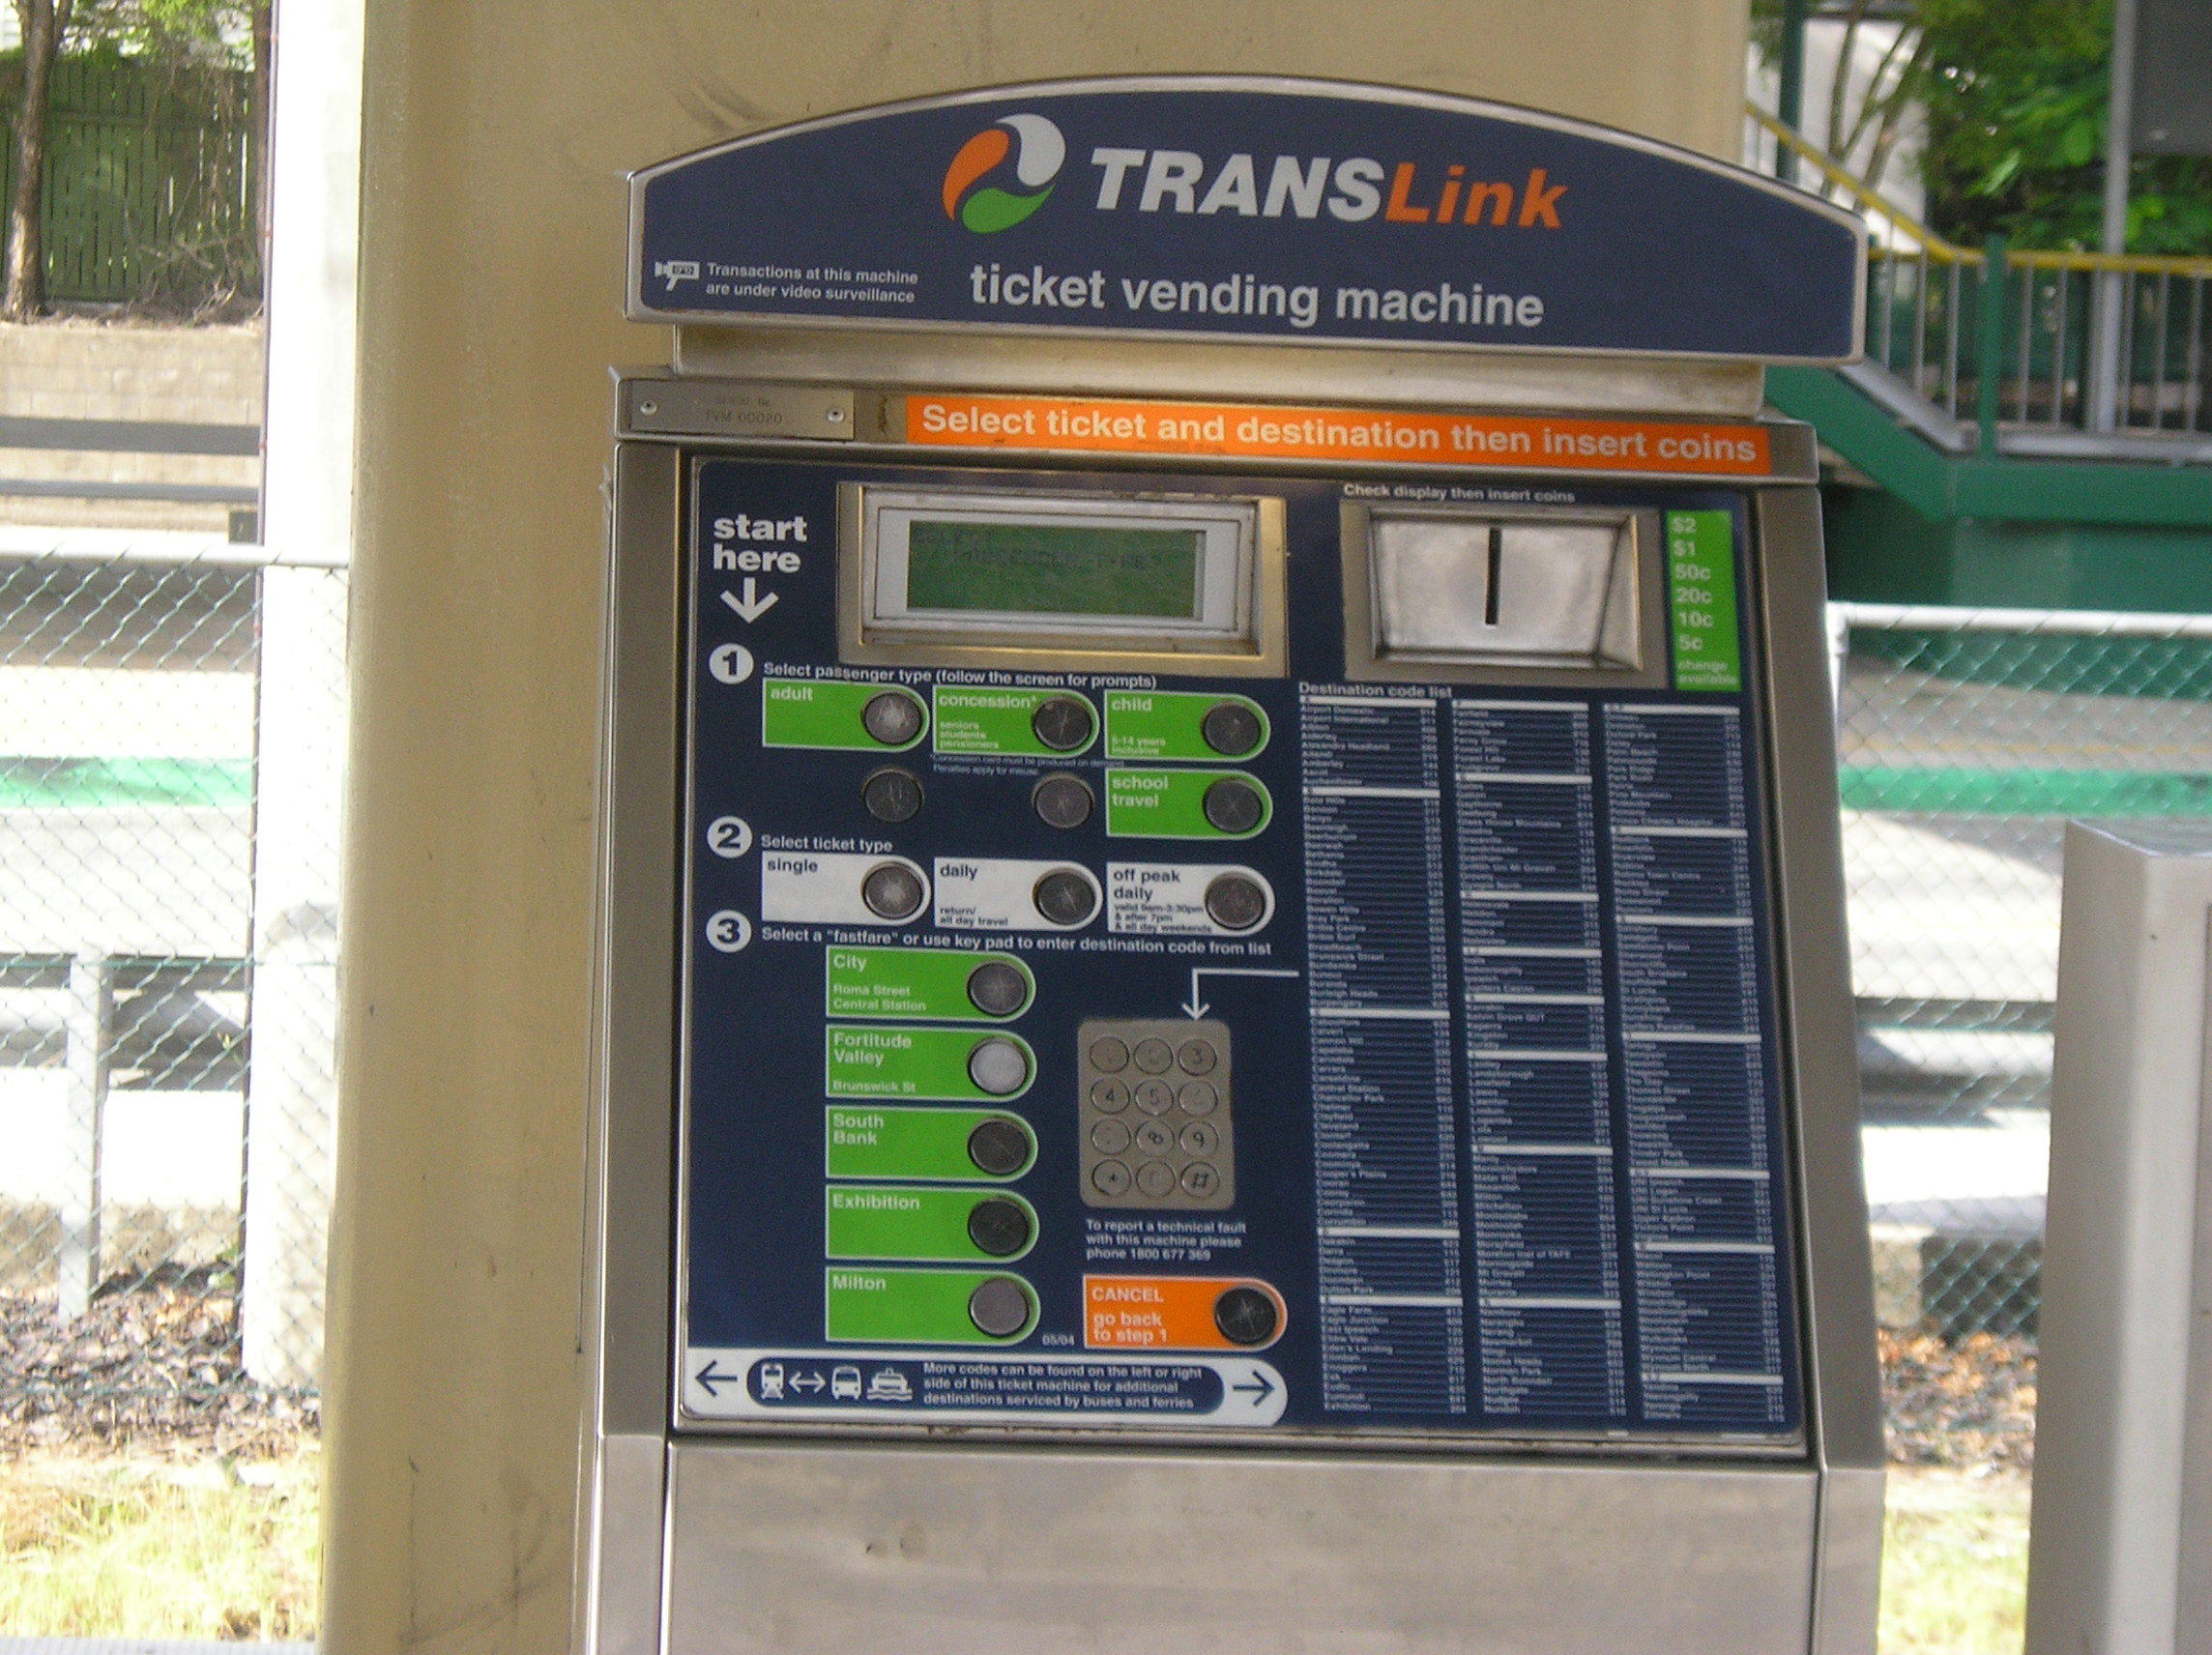 https://upload.wikimedia.org/wikipedia/commons/0/03/Translink_machine.jpg